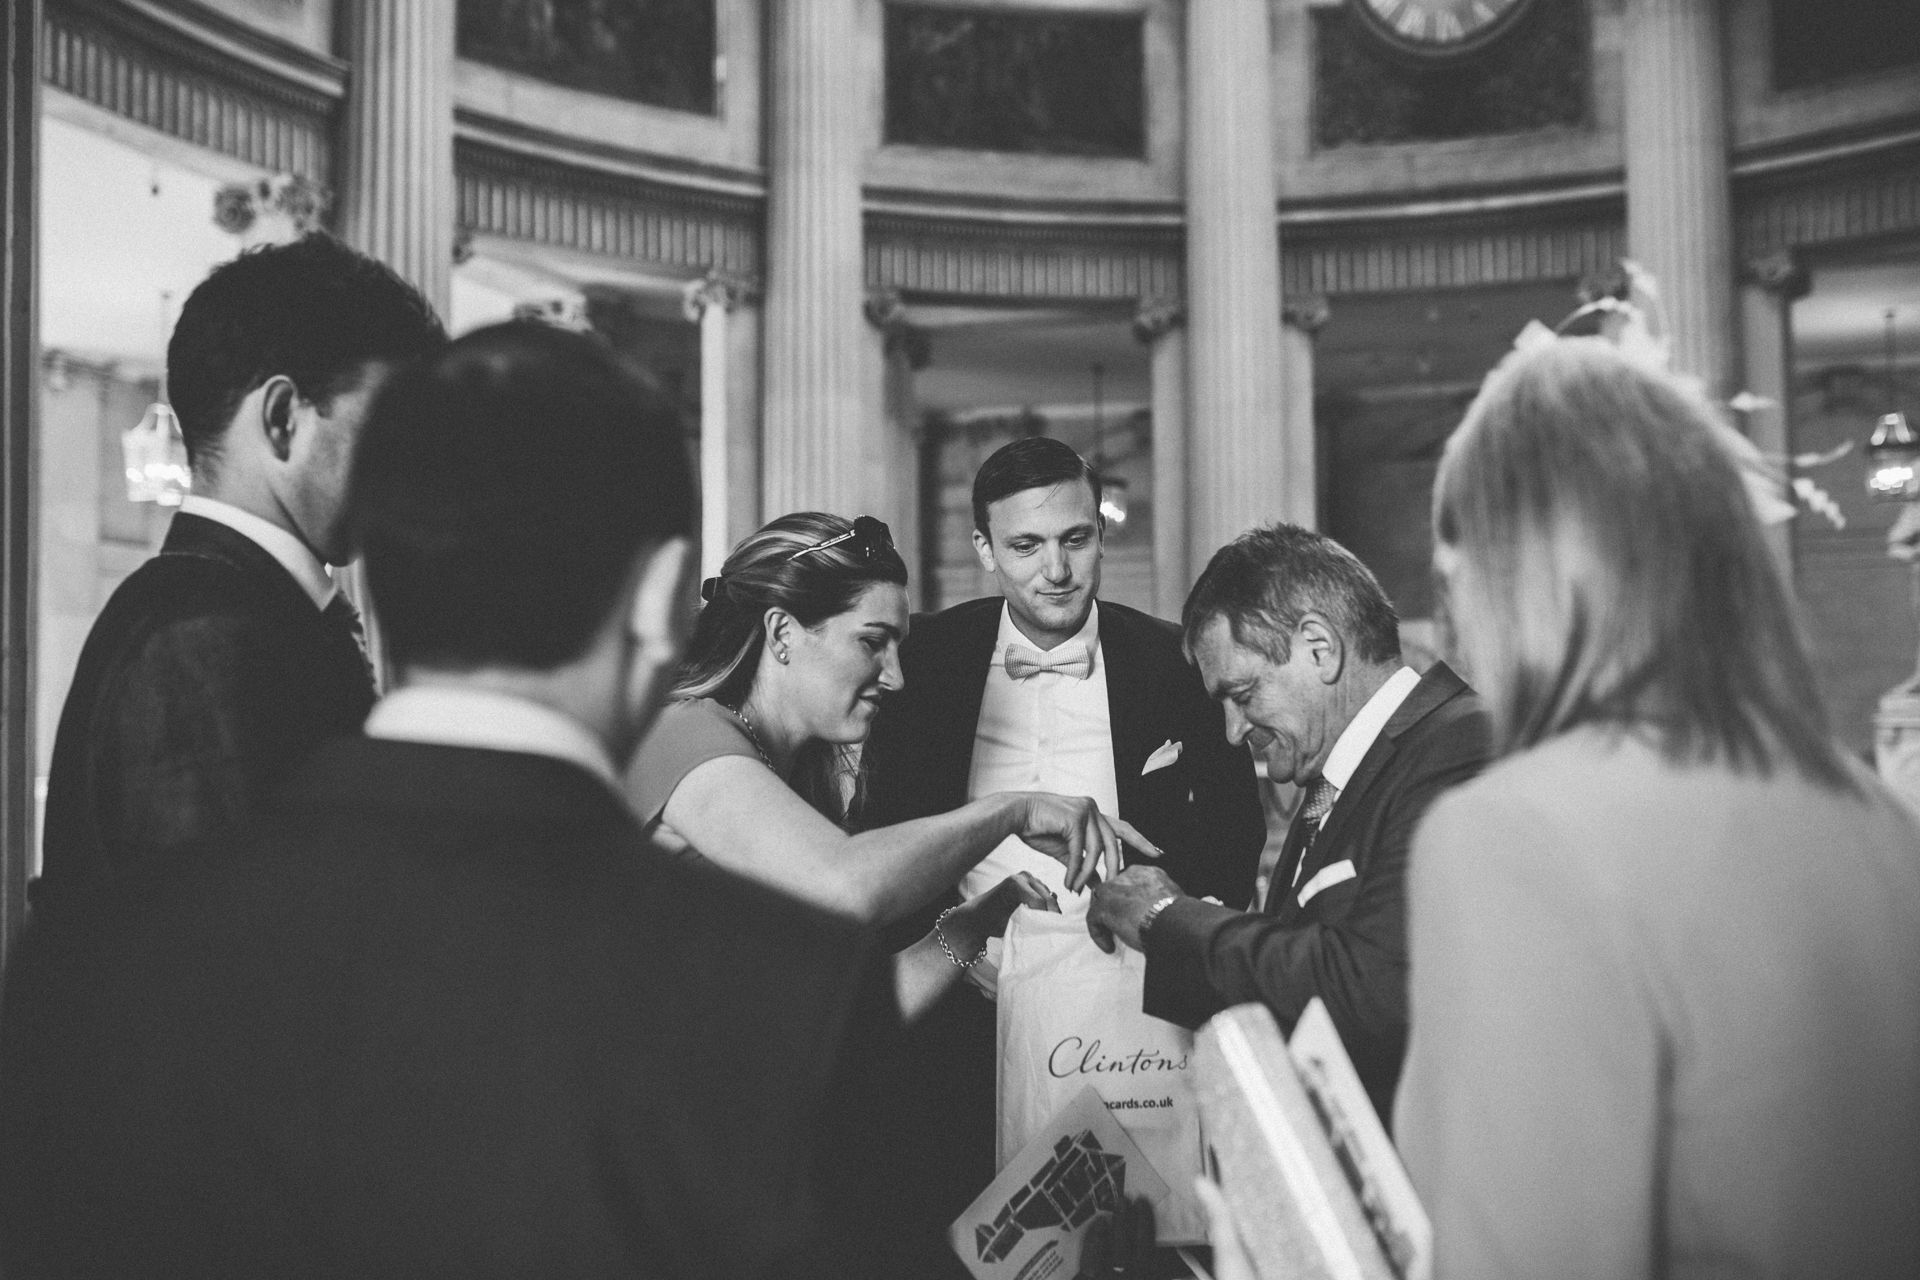 Dublin Wedding Photographer Graciela Vilagudin 00149.jpg